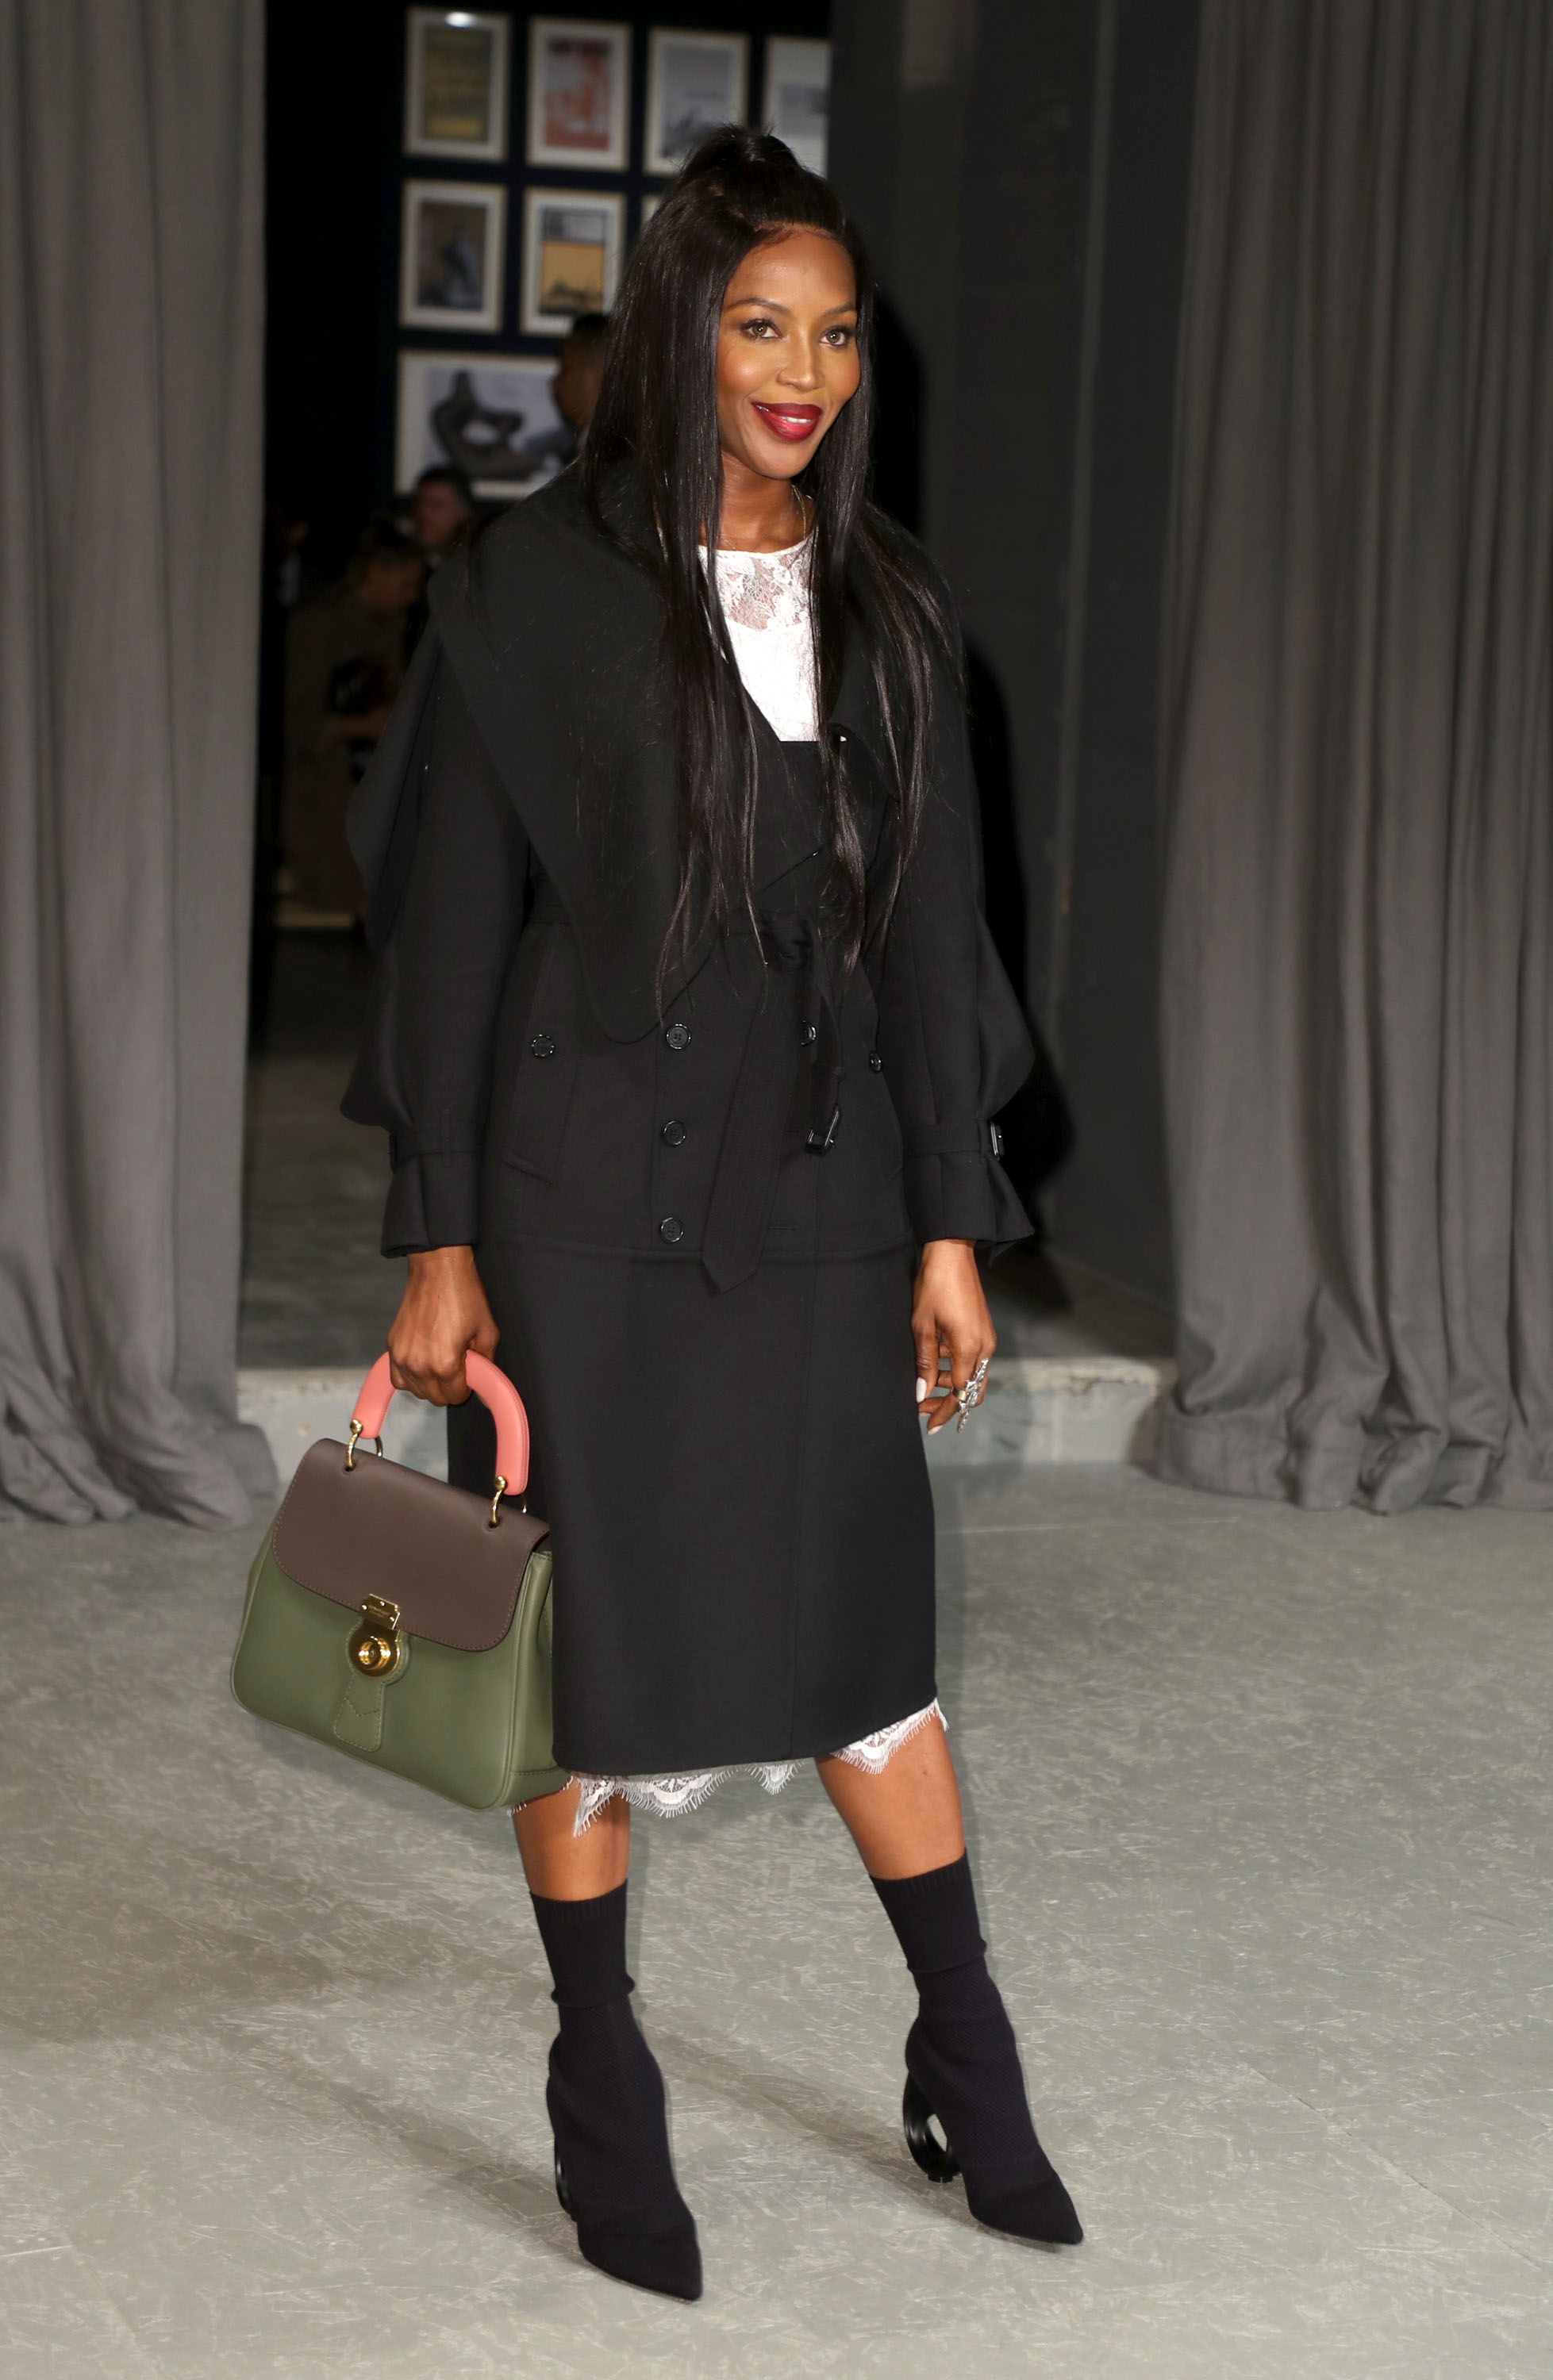 LONDON, ENGLAND - FEBRUARY 20: Naomi Campbell attends the Burberry show during the London Fashion Week February 2017 collections on February 20, 2017 in London, England.  (Photo by Mike Marsland/Mike Marsland/WireImage)